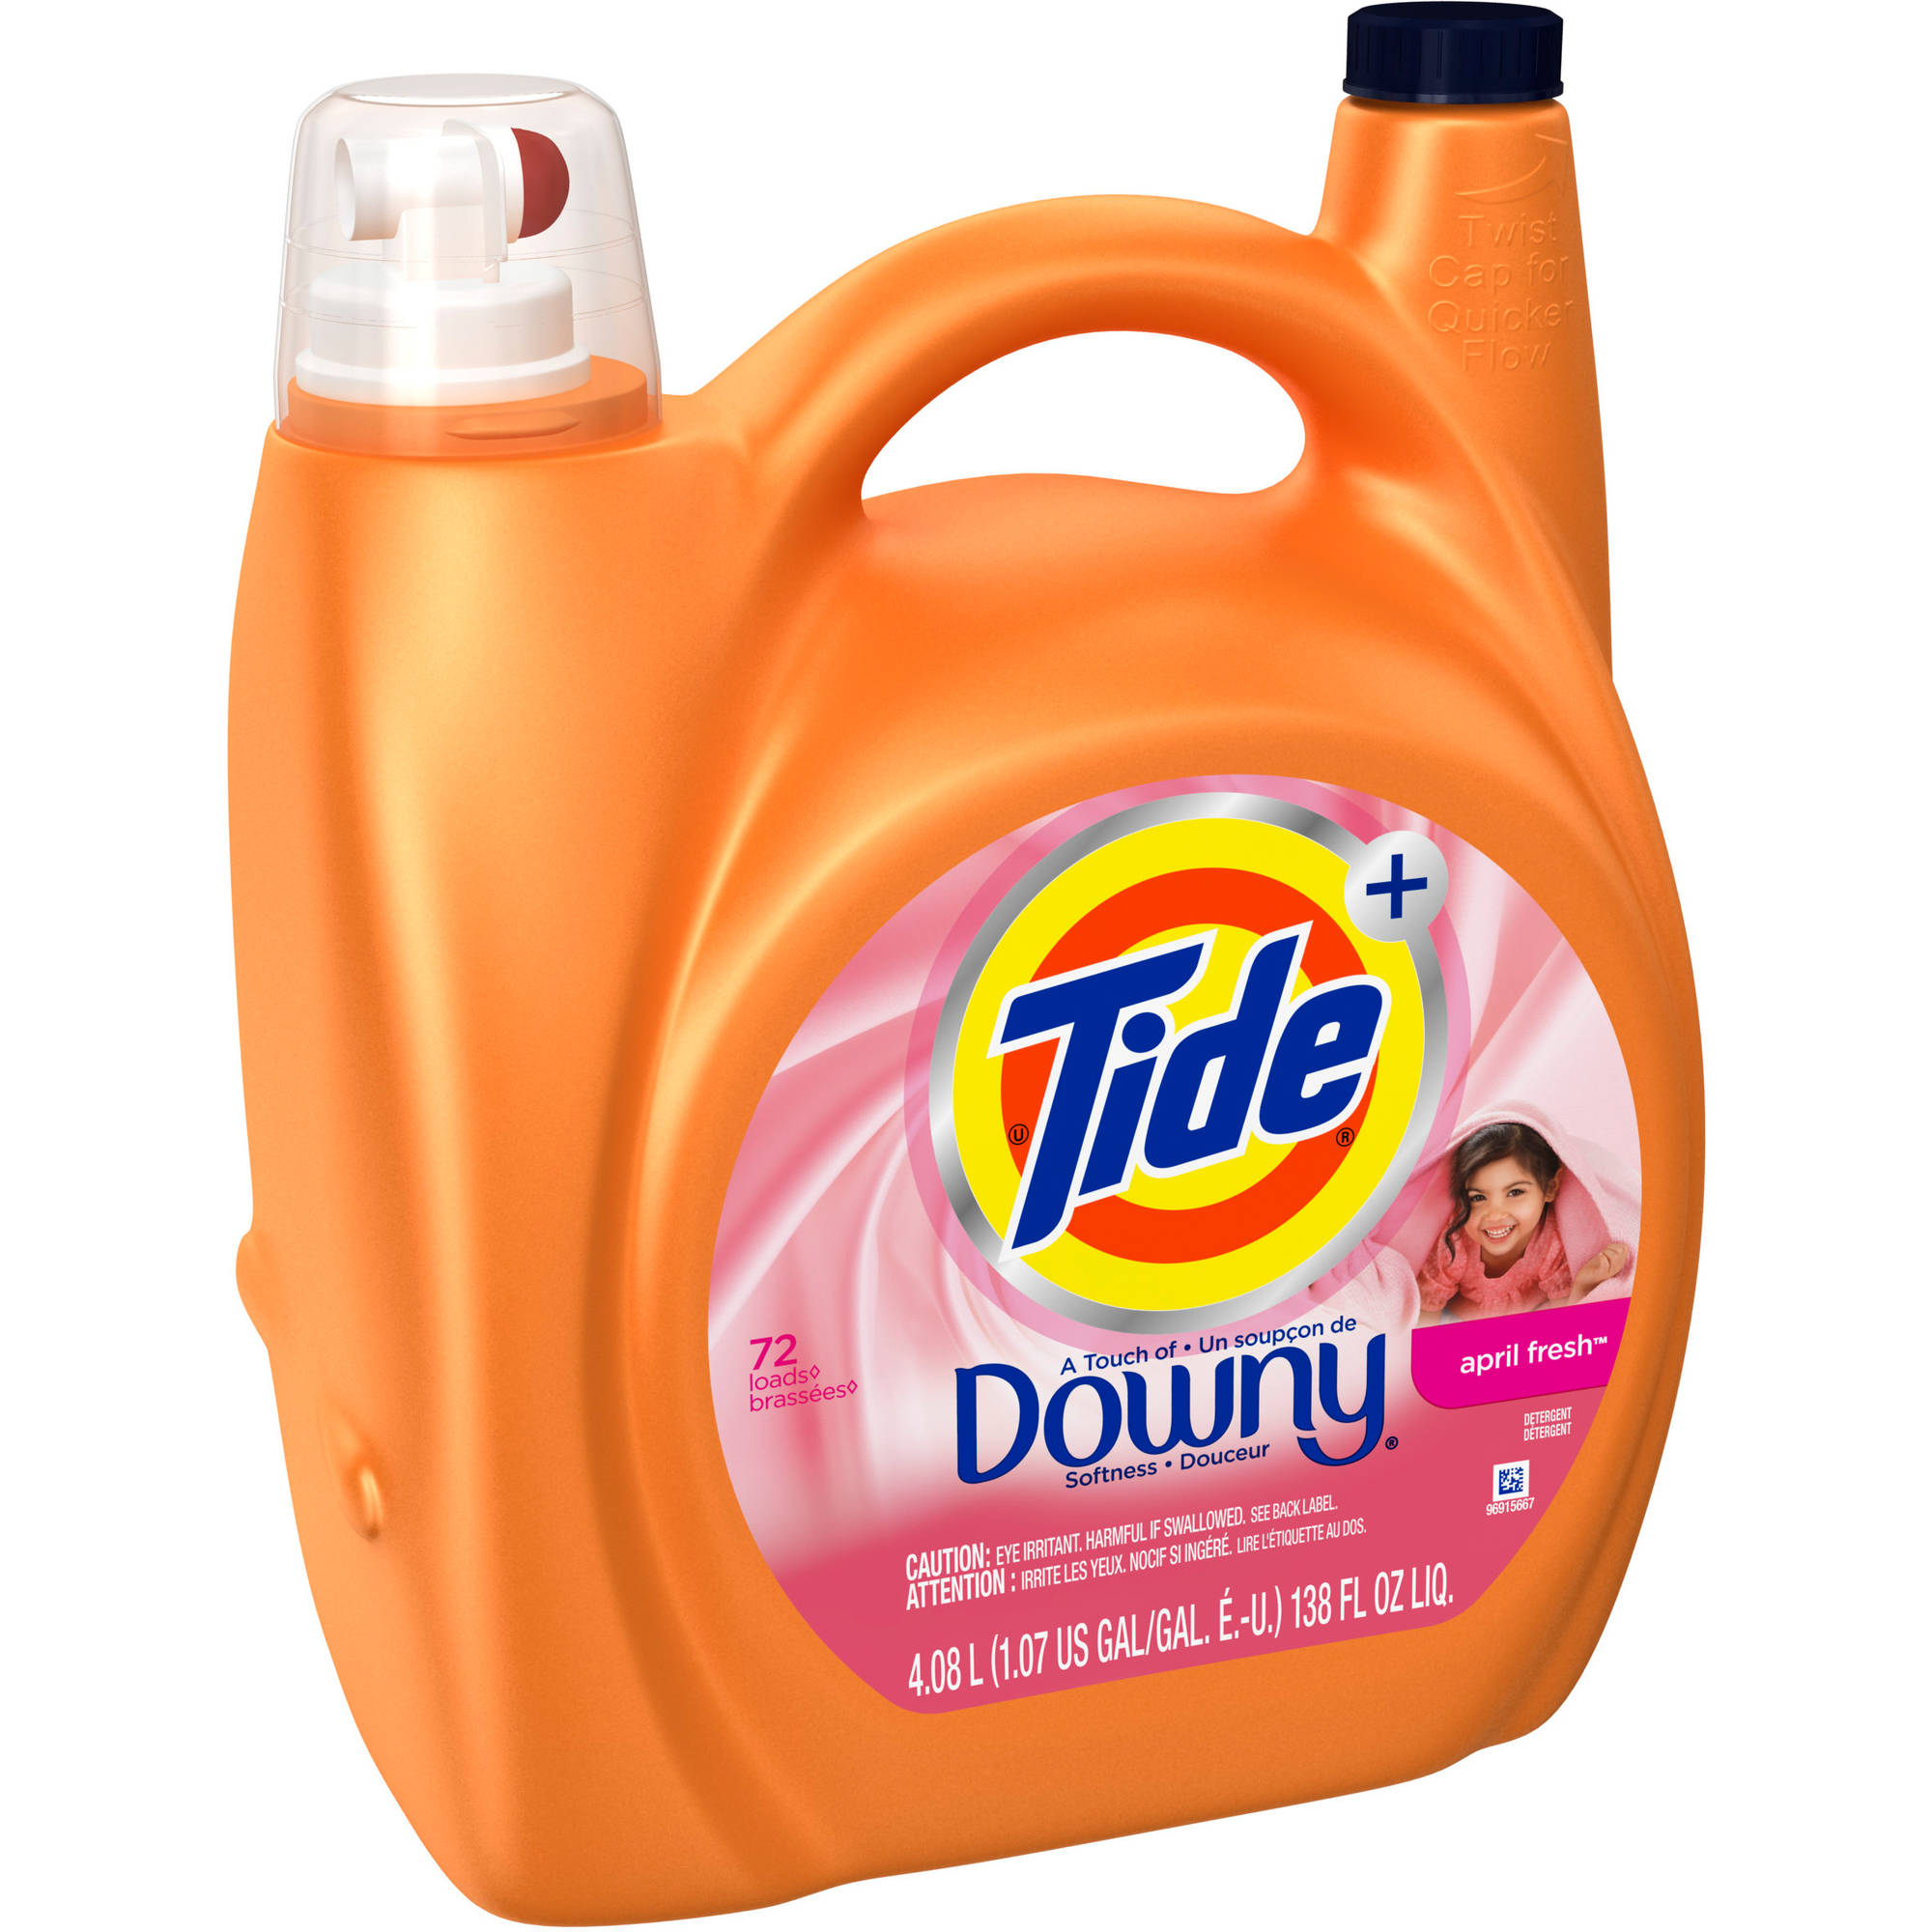 Tide Plus Downy April Fresh Scent Liquid Laundry Detergent, 72 Loads 138 oz